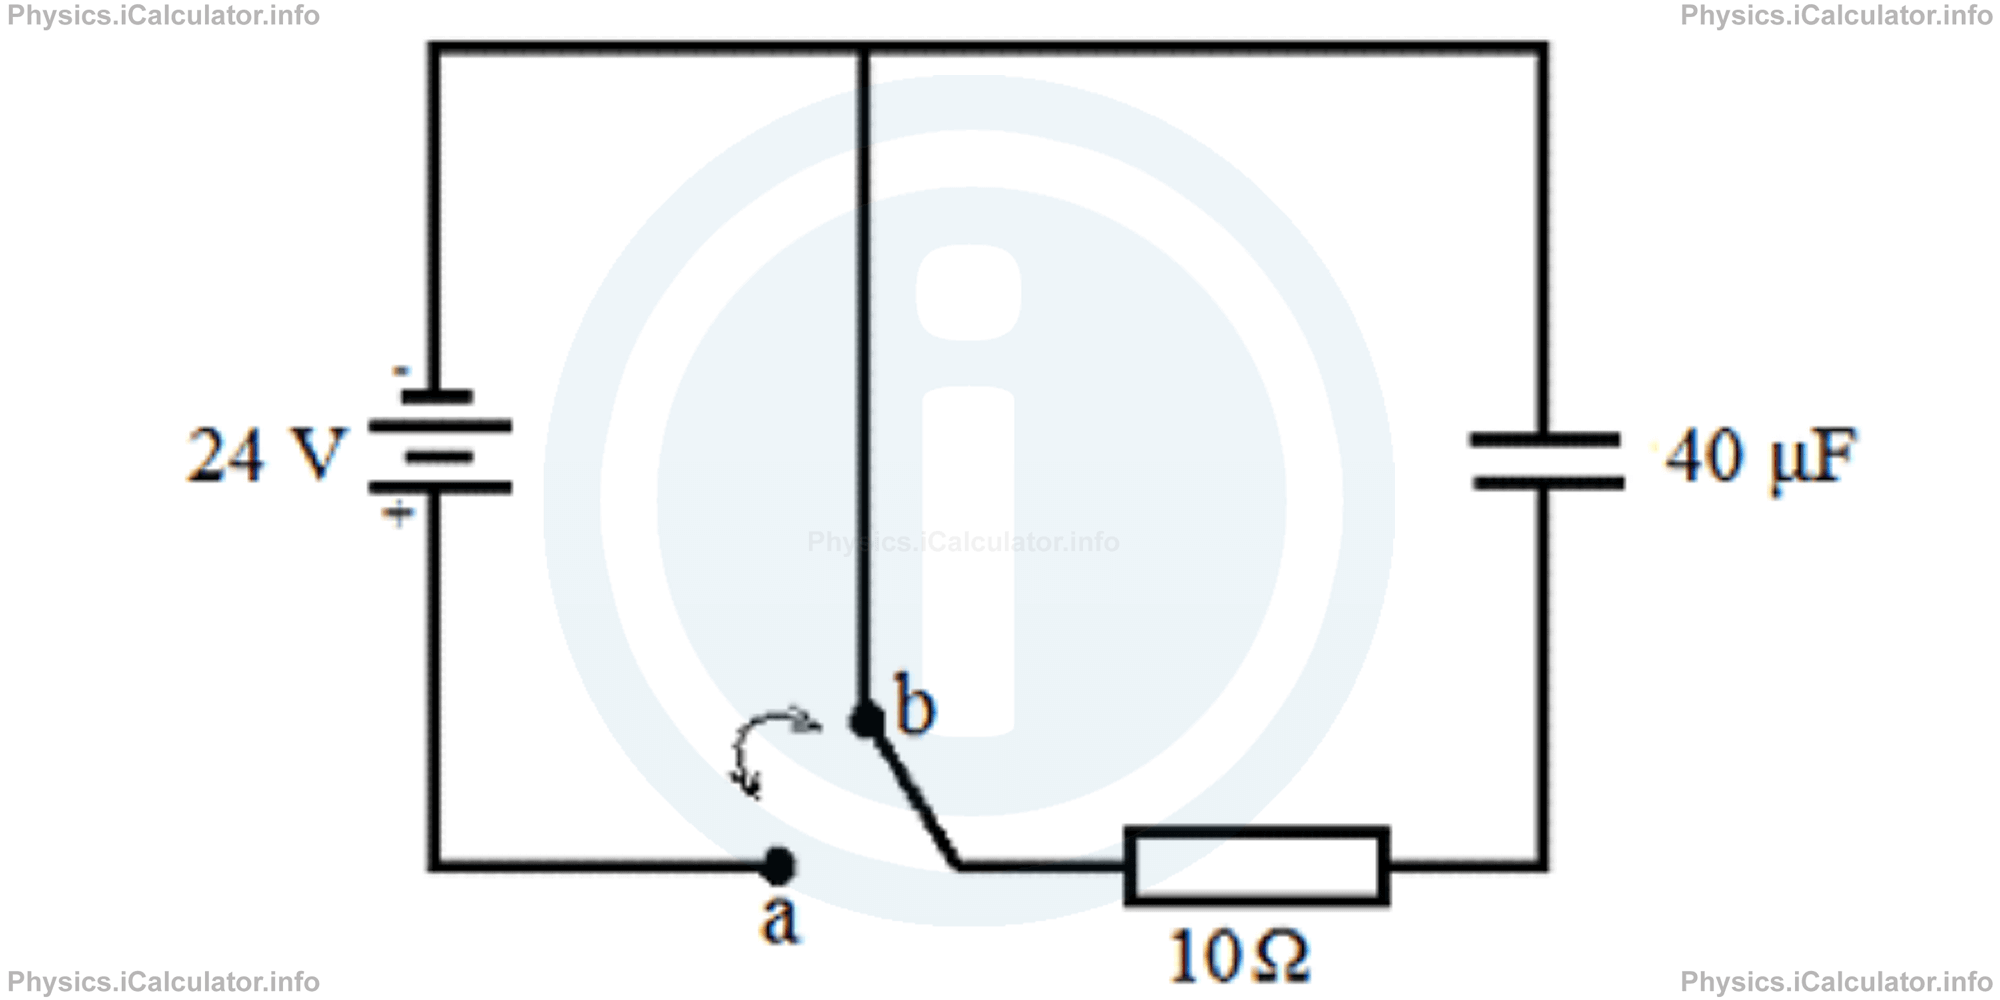 Physics Tutorials: This image provides visual information for the physics tutorial RC Circuits